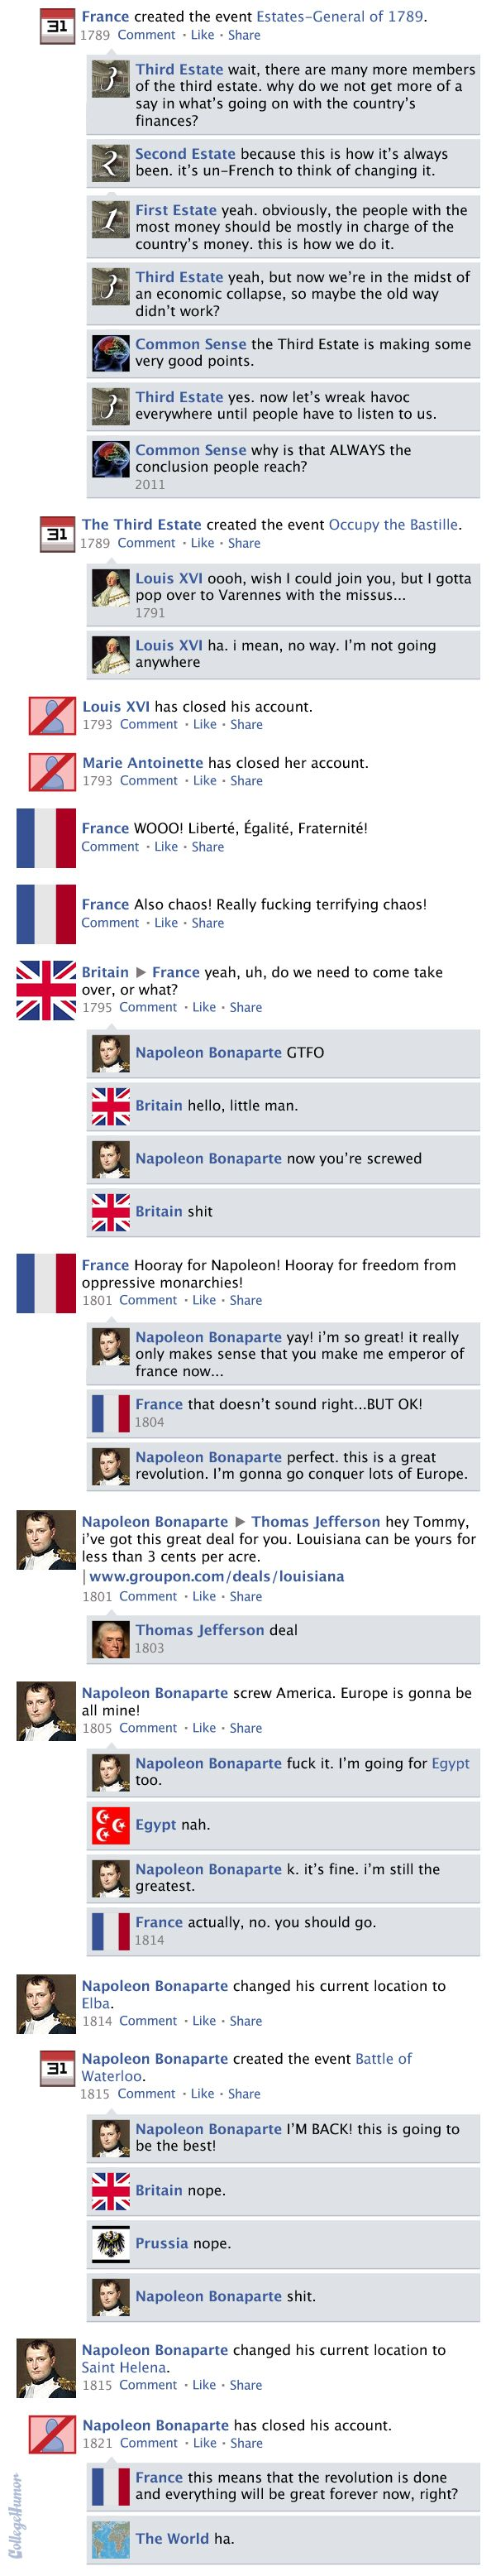 "A funny interpretation of the French Revolution on a Facebook timetable. Originally from ""College Humor""."